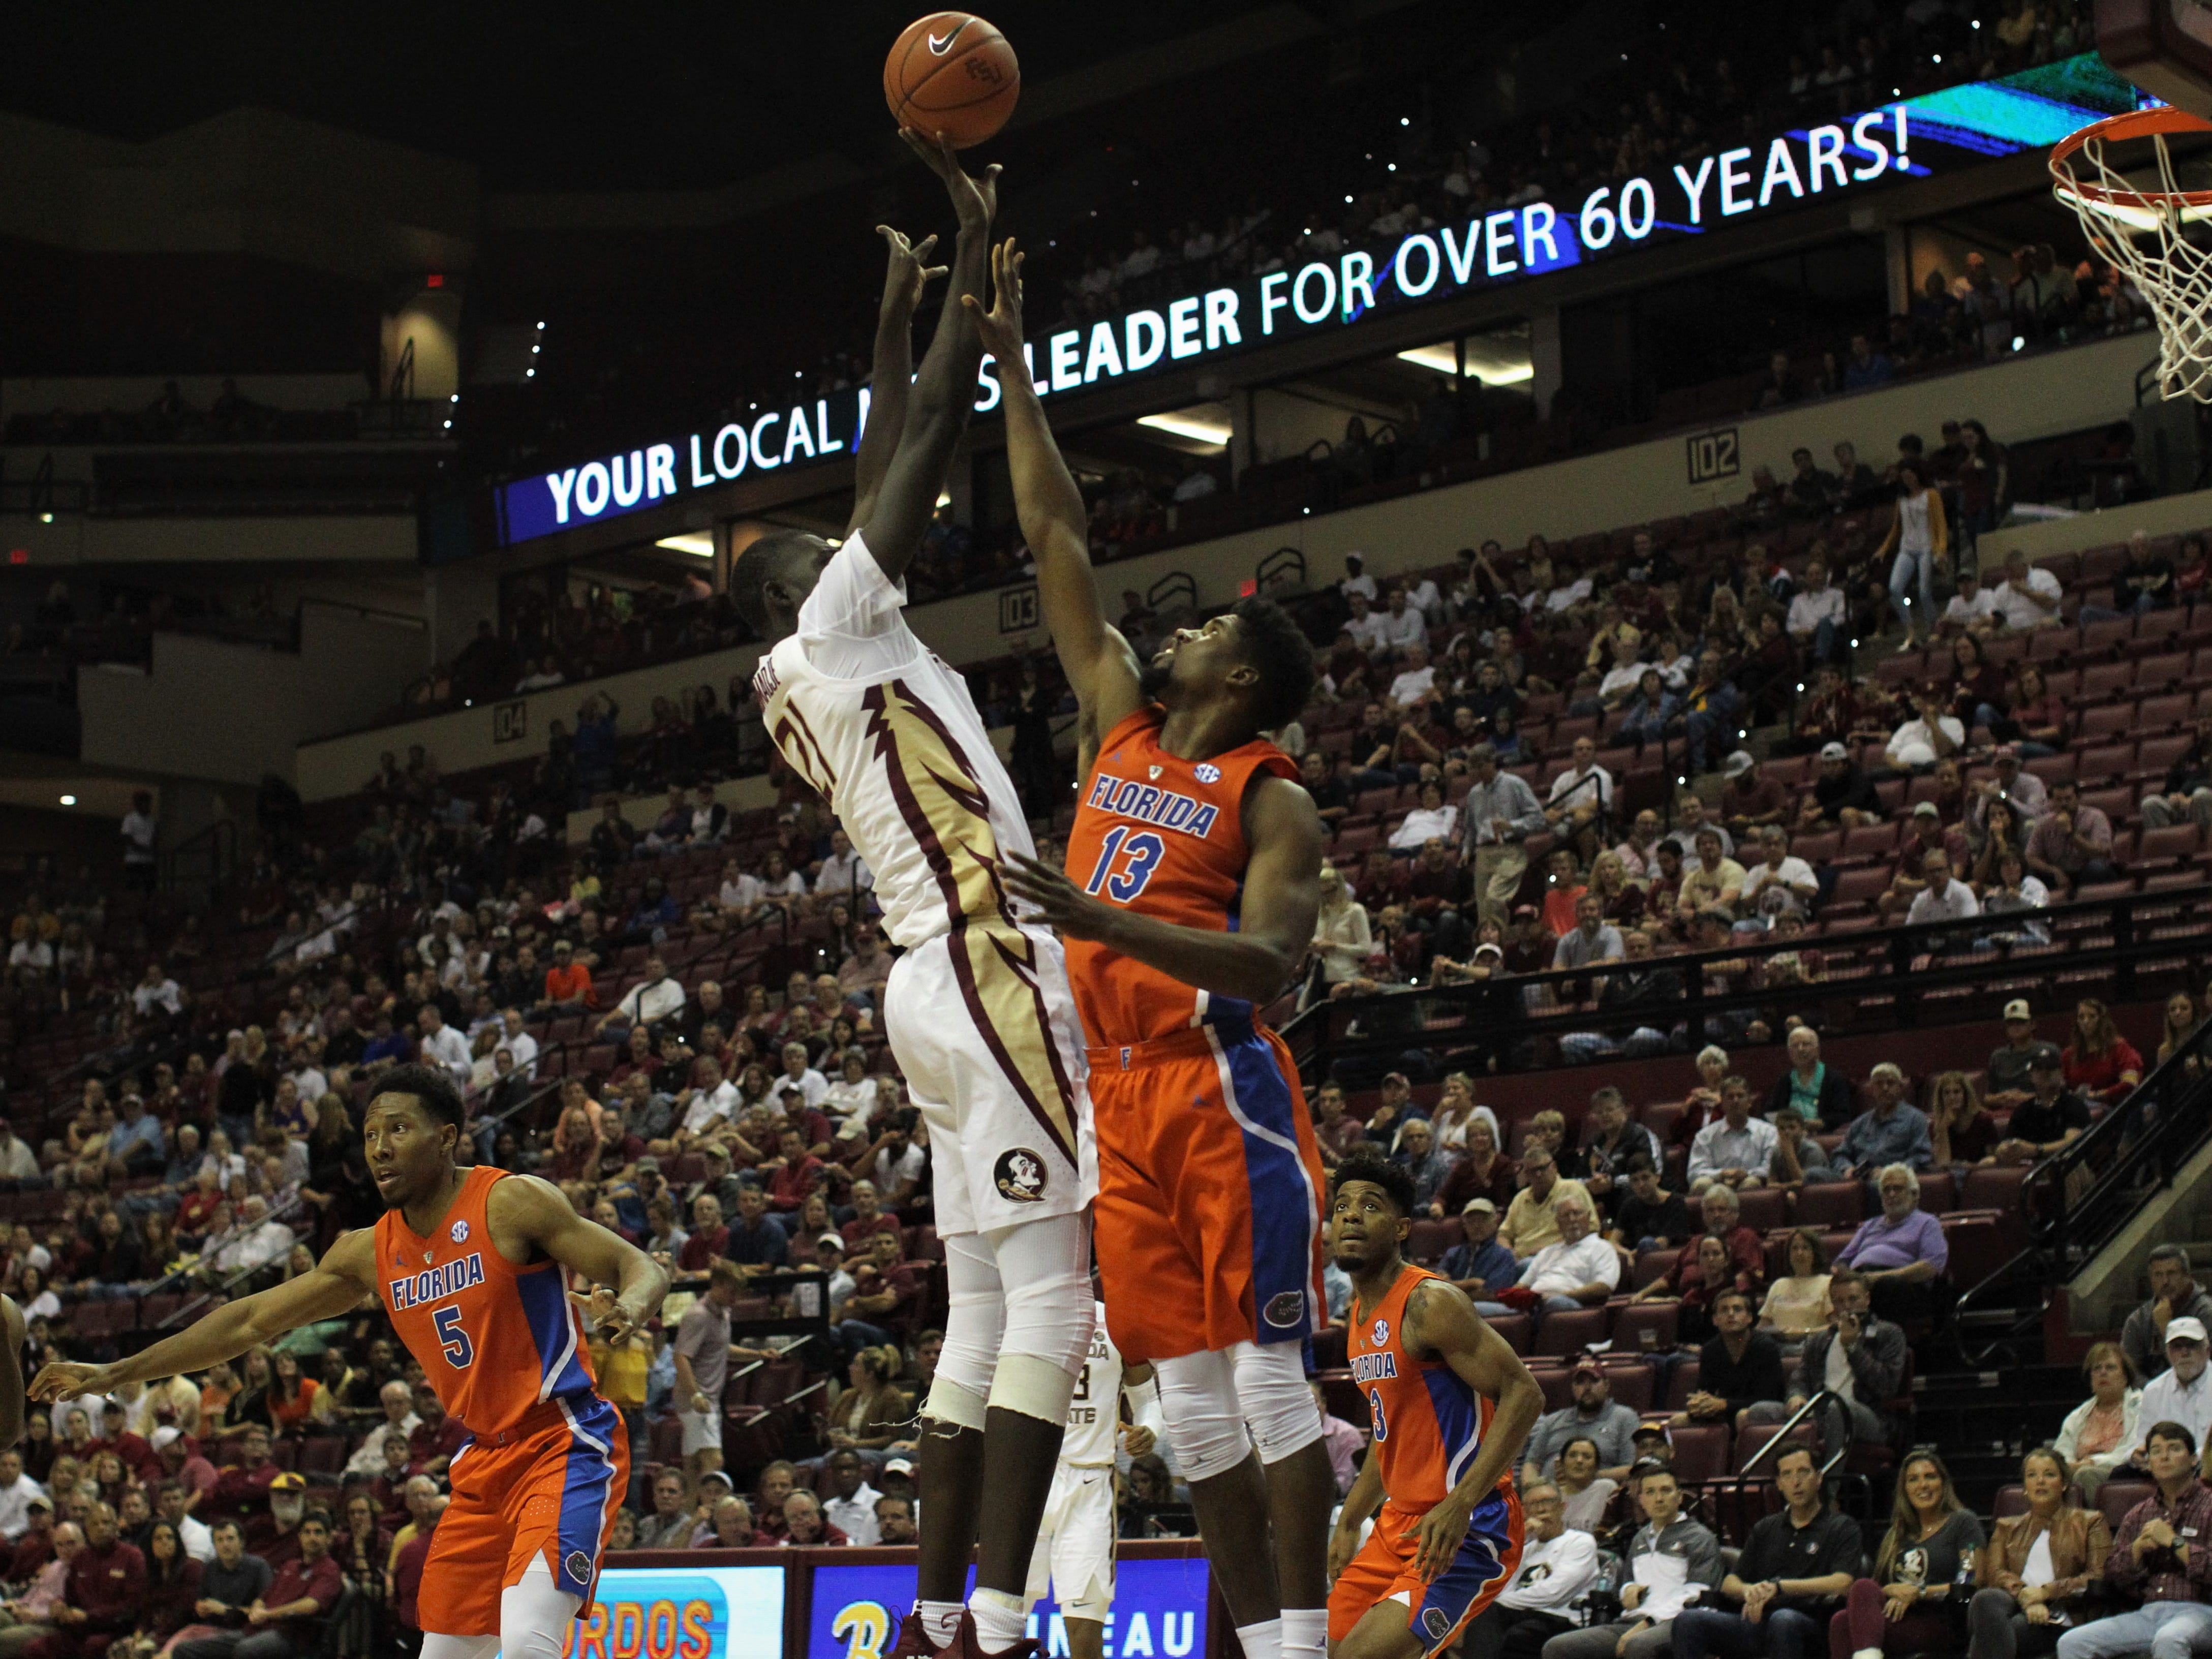 Florida State center Christ Koumadje puts together a post move against Florida's Anthony Polite during the Sunshine Showdown game Tuesday at the Tucker Civic Center.